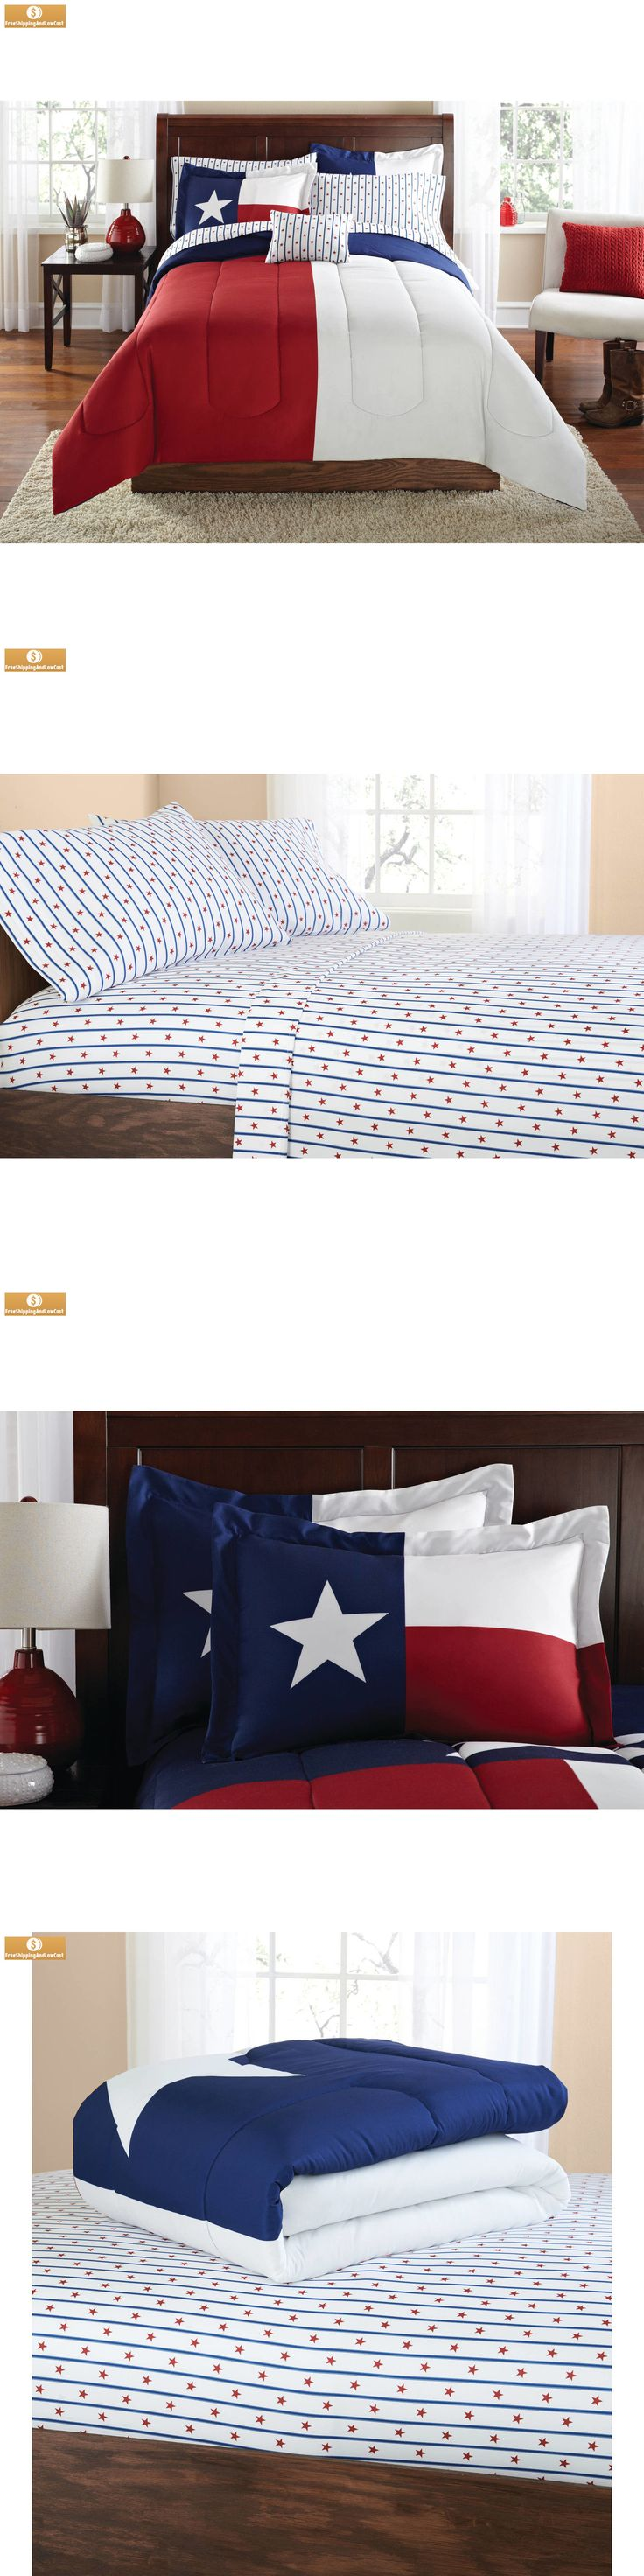 Bed-in-a-Bag 20469: Twin Twin Xl Texas Star Flag Comforter 6 8 Bed In A Bag Coordinated Bedding Set -> BUY IT NOW ONLY: $59.32 on eBay!